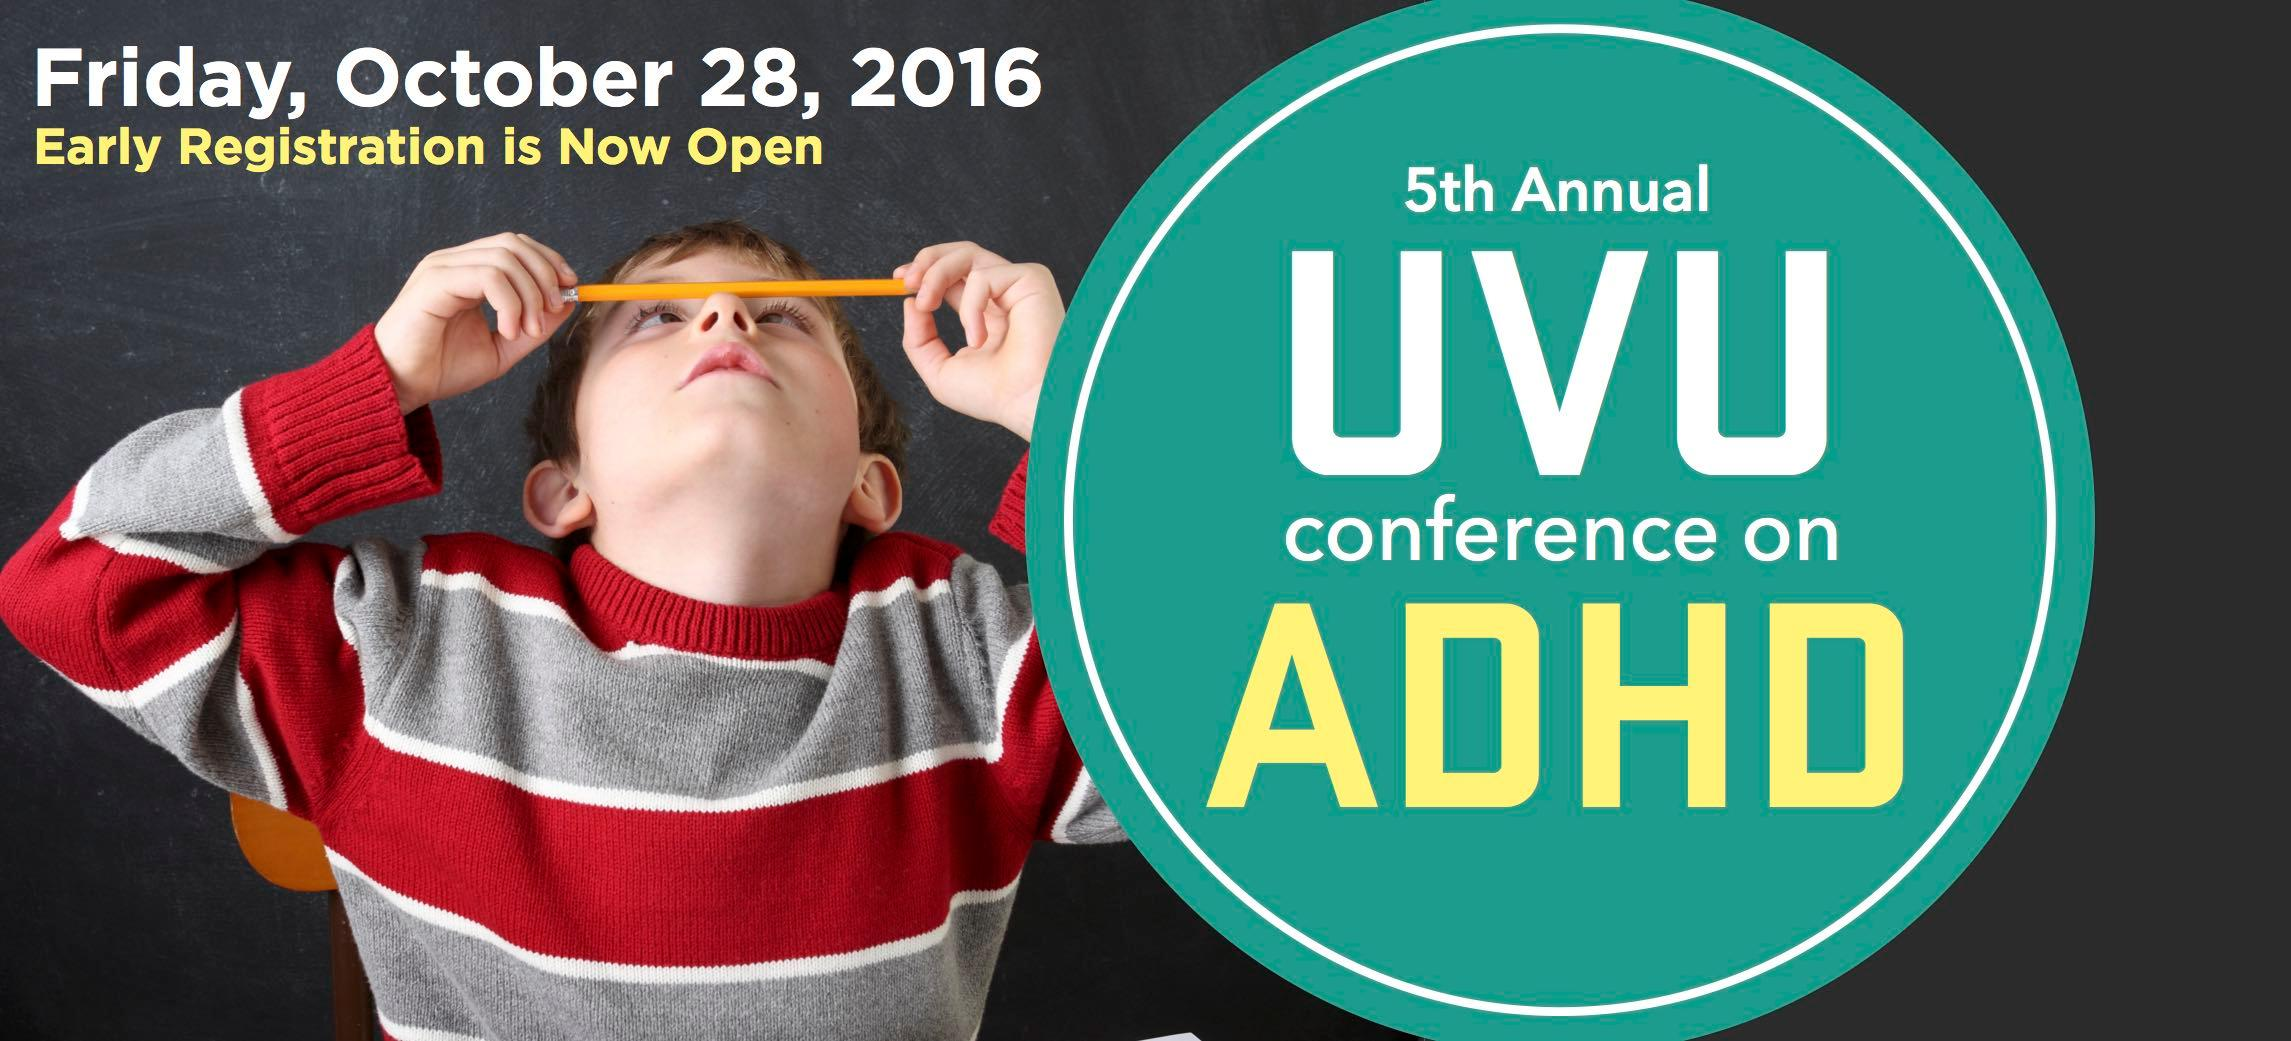 UVU ADHD Conference